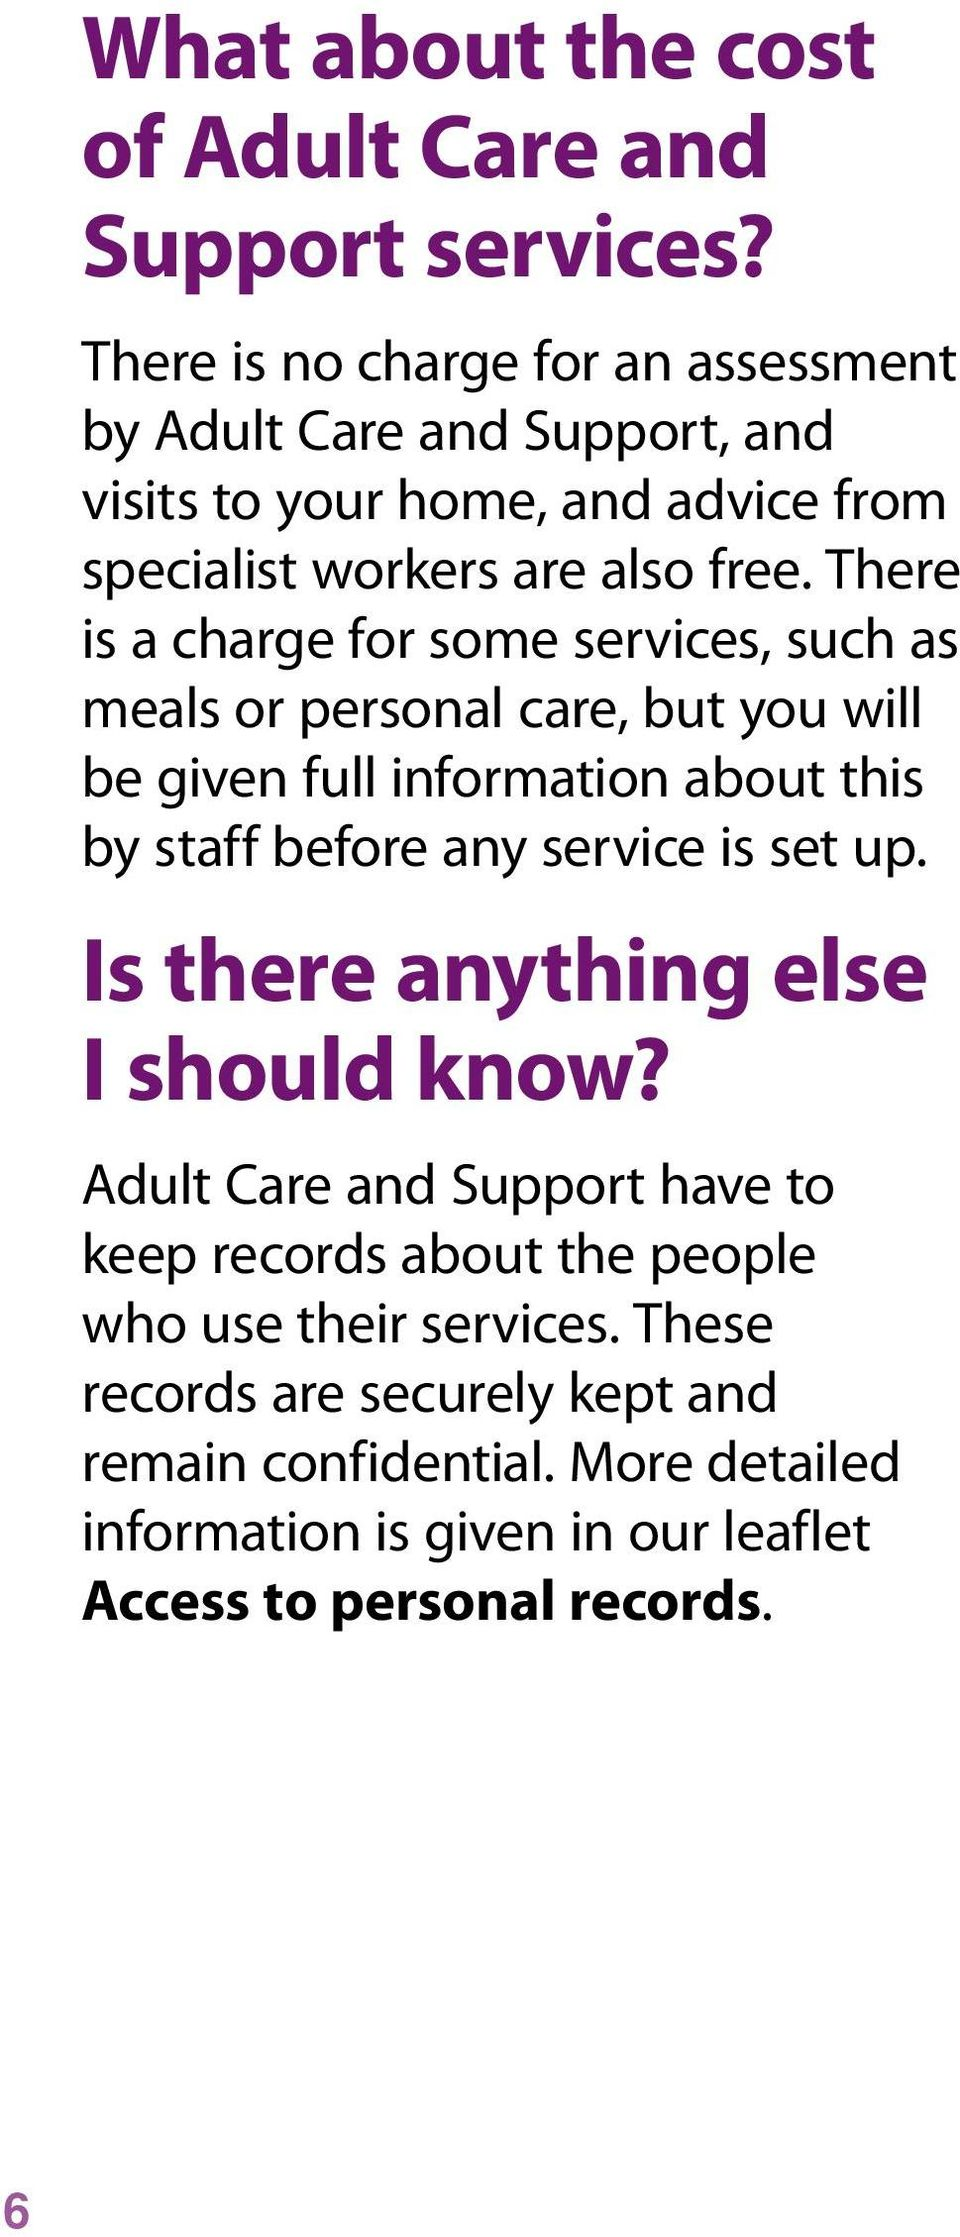 There is a charge for some services, such as meals or personal care, but you will be given full information about this by staff before any service is